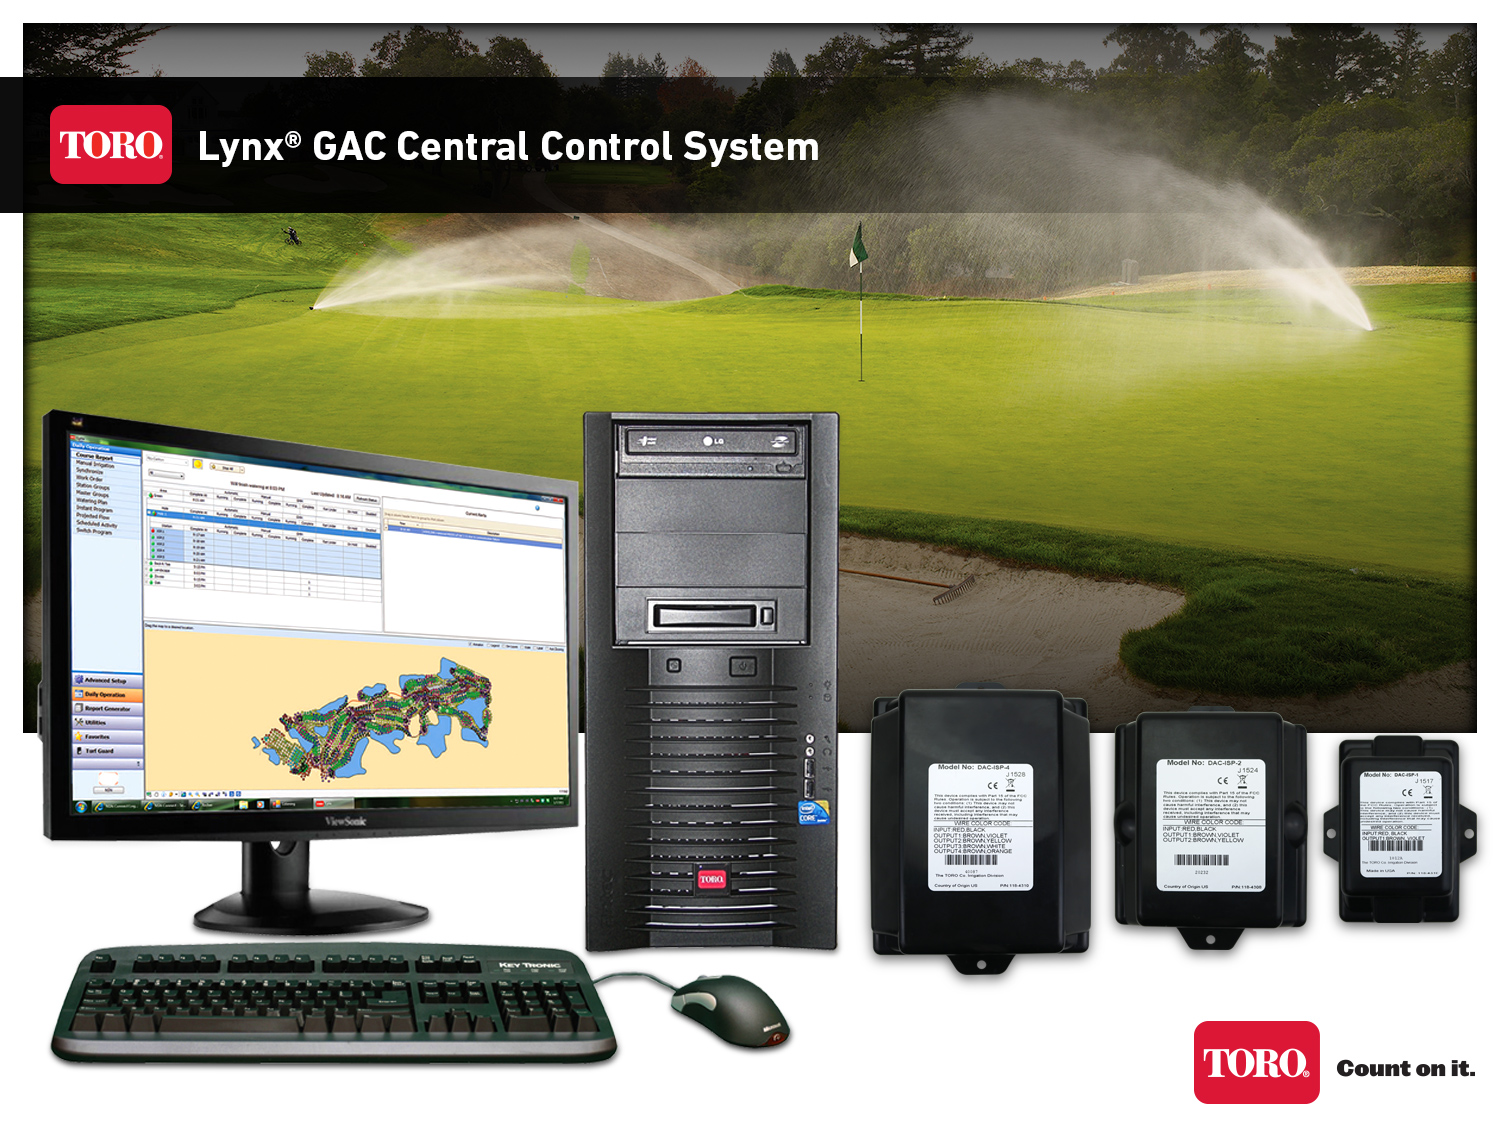 Easily upgrade older decoder systems with Toro Lynx® GAC